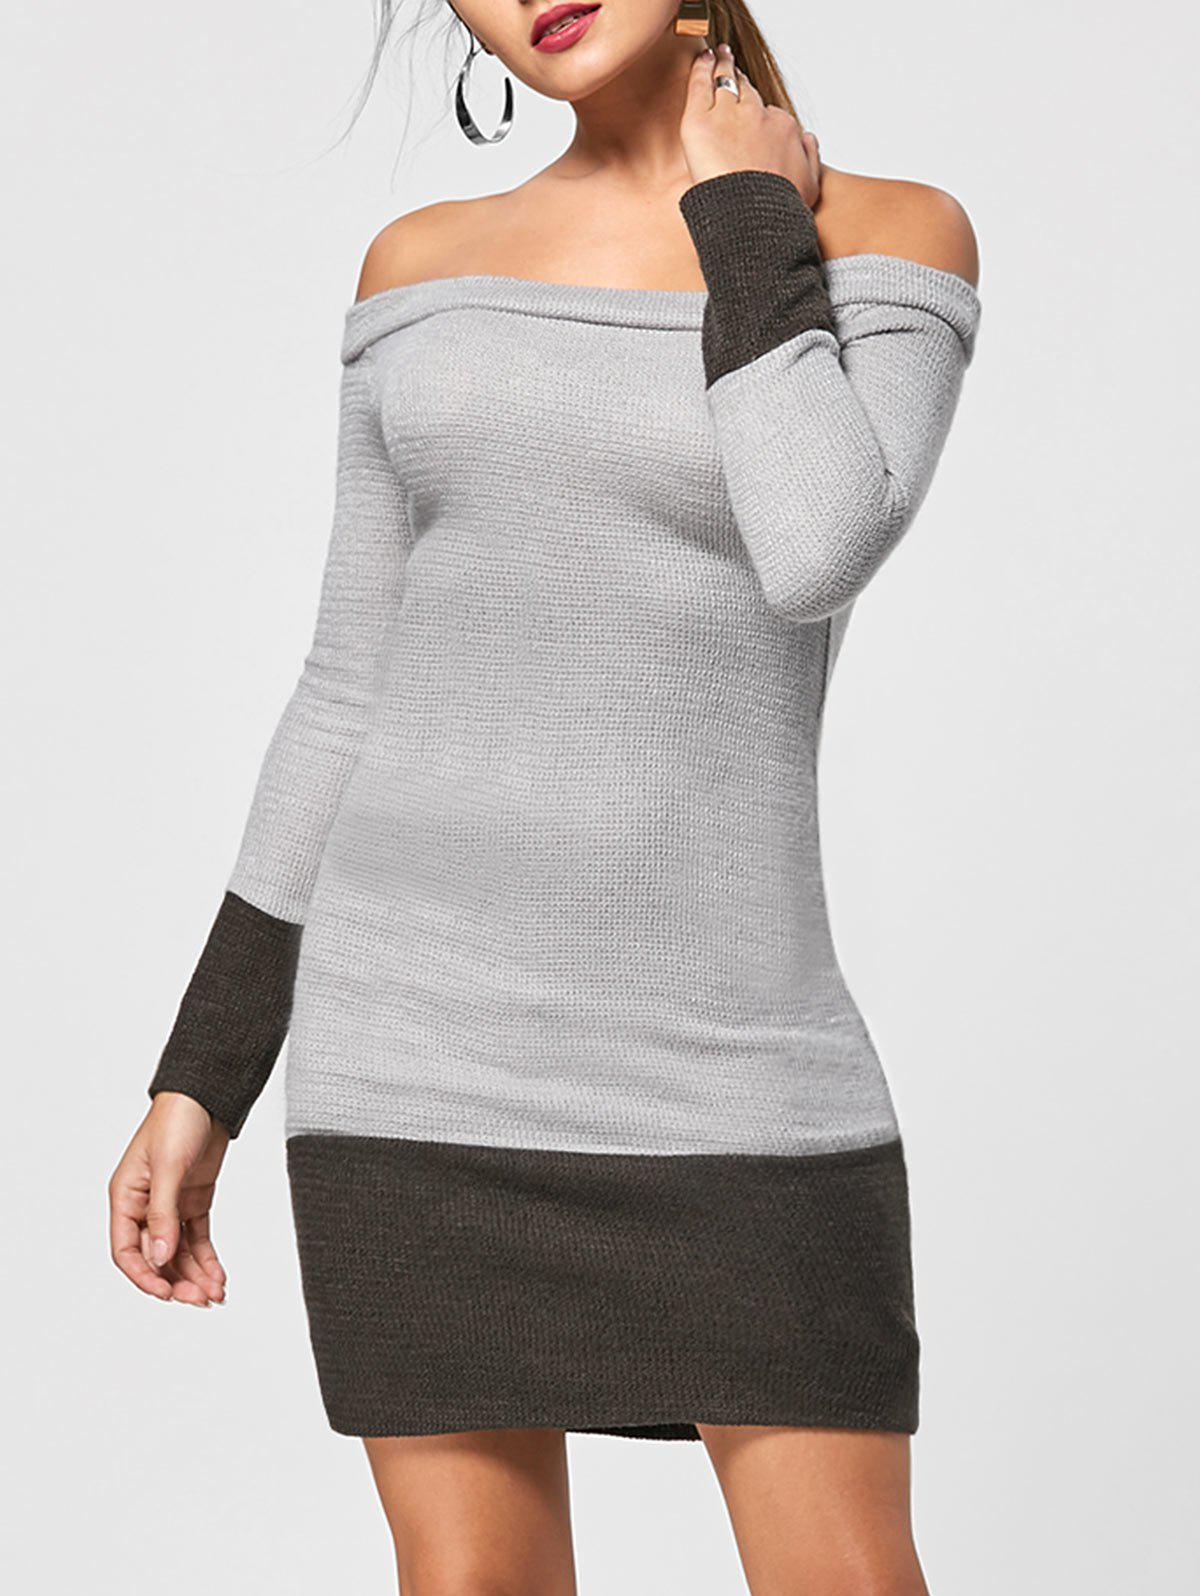 Off The Shoulder Sheath Jumper Dress - GRAY L